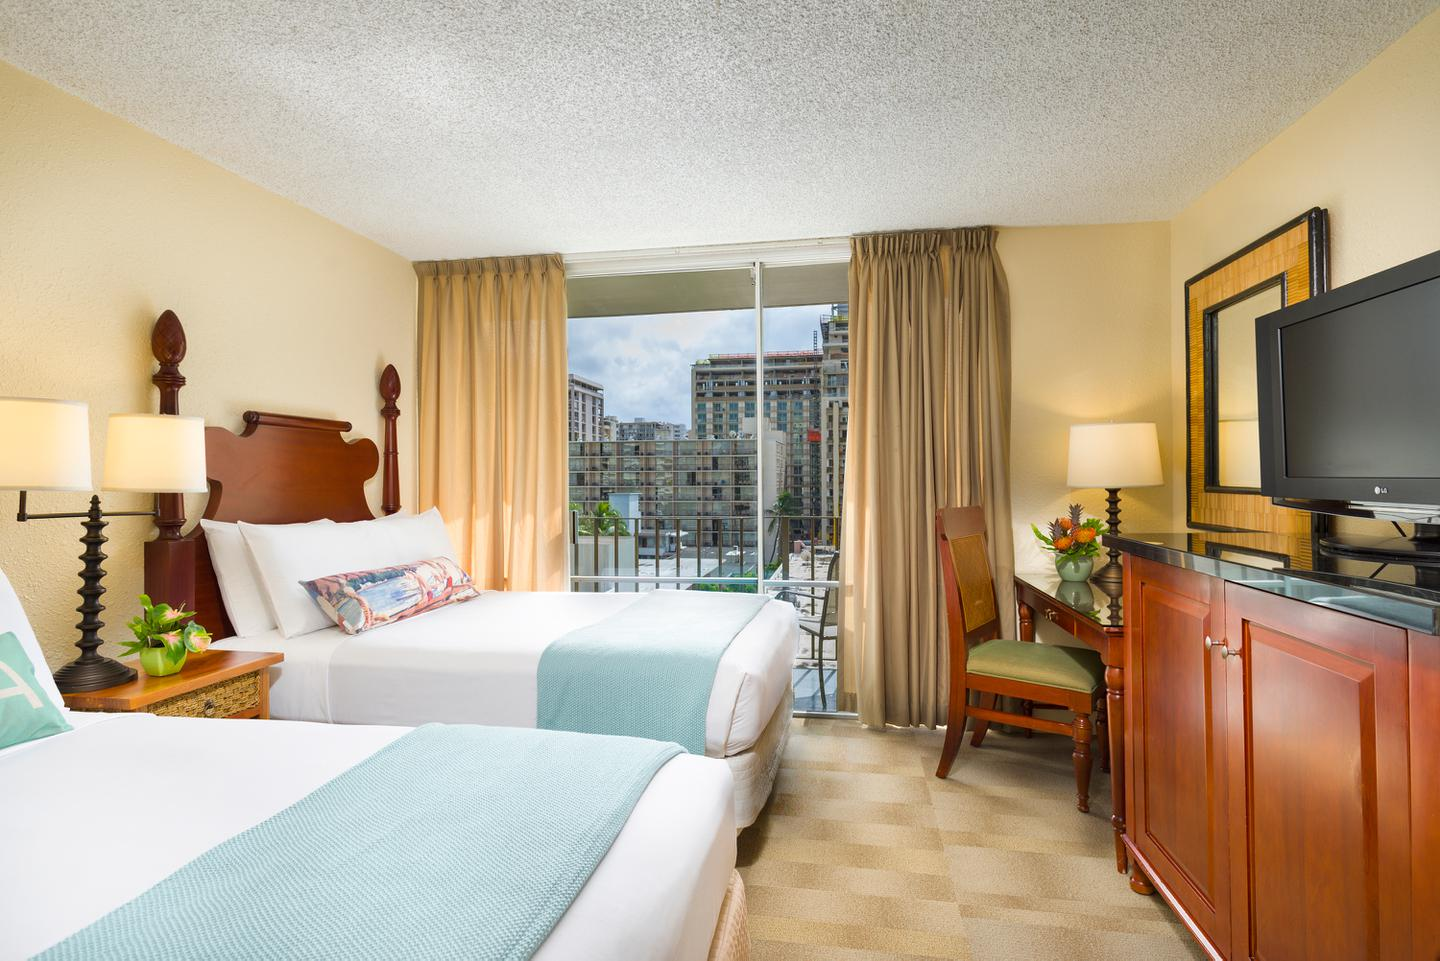 hotels with kitchens in waikiki kitchen tile countertops rooms and accommodations for aqua ohia aston